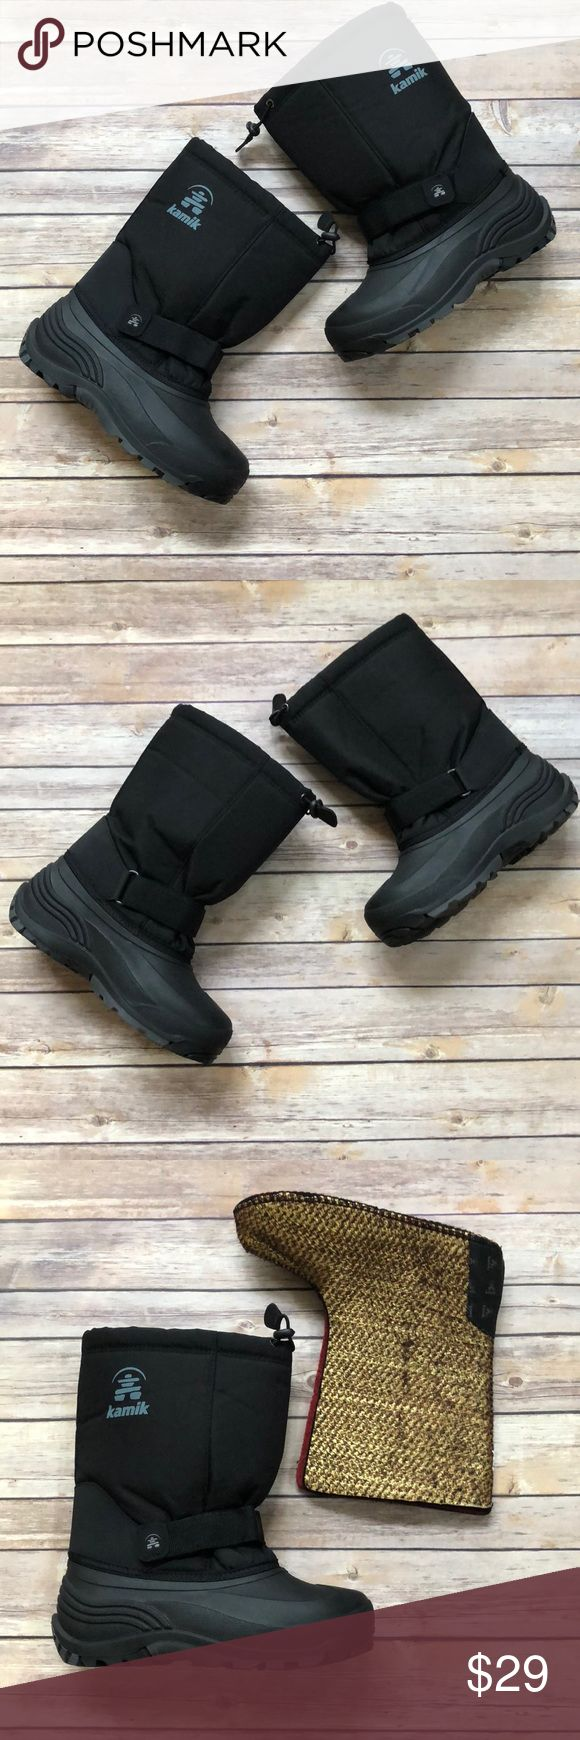 Boys Kamik Winter Boots size 6 EUC!  Worn only a count of times.  Big boys/youth size 6.  Removable liners.  Velcro closure ankle strap. Kamik Shoes Rain & Snow Boots